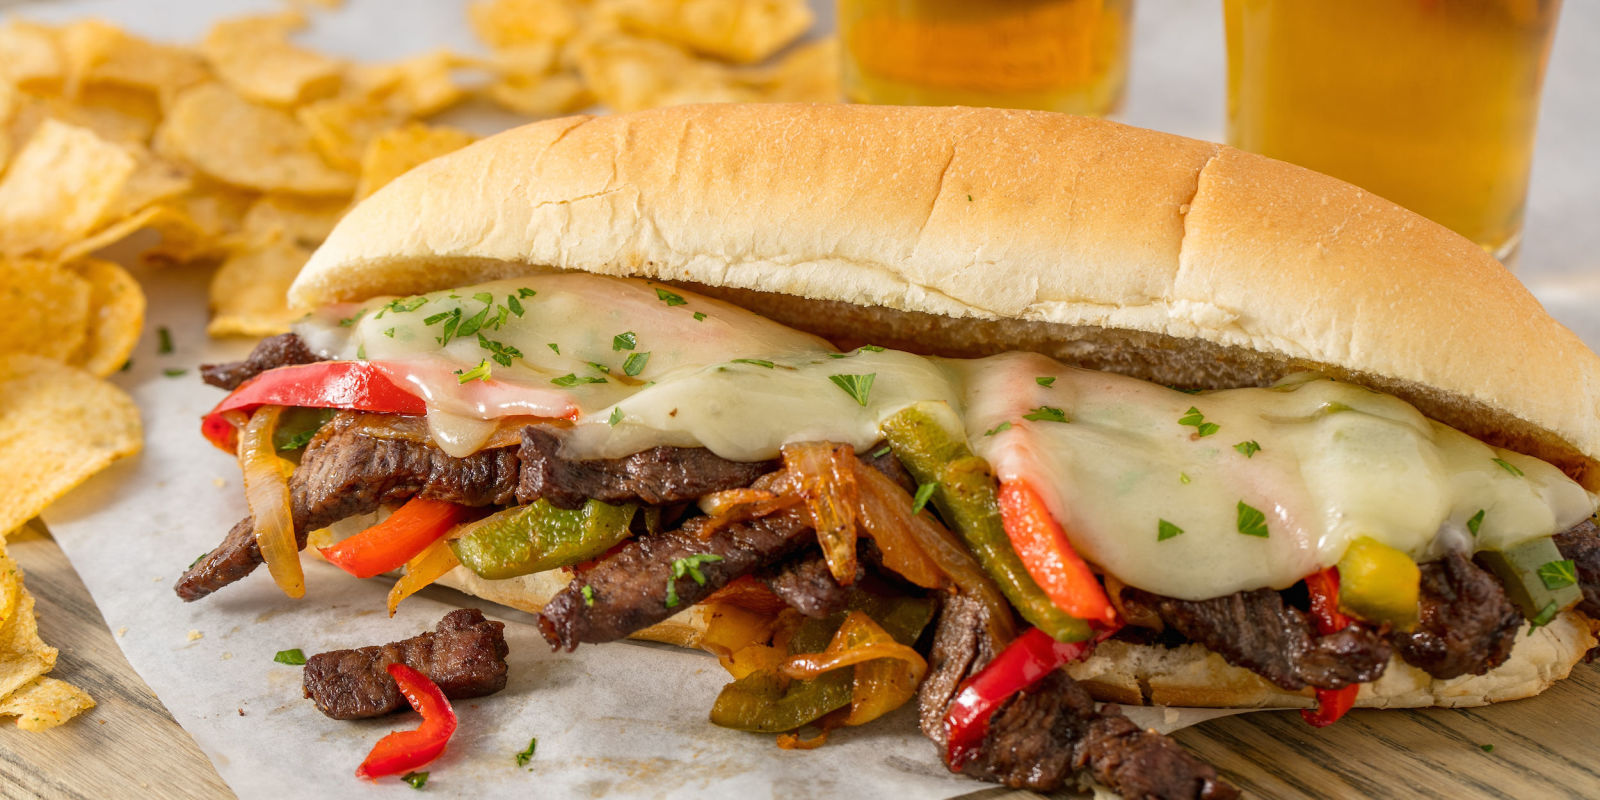 Easy Homemade Philly Cheese Steak Recipe - How to Make a ...